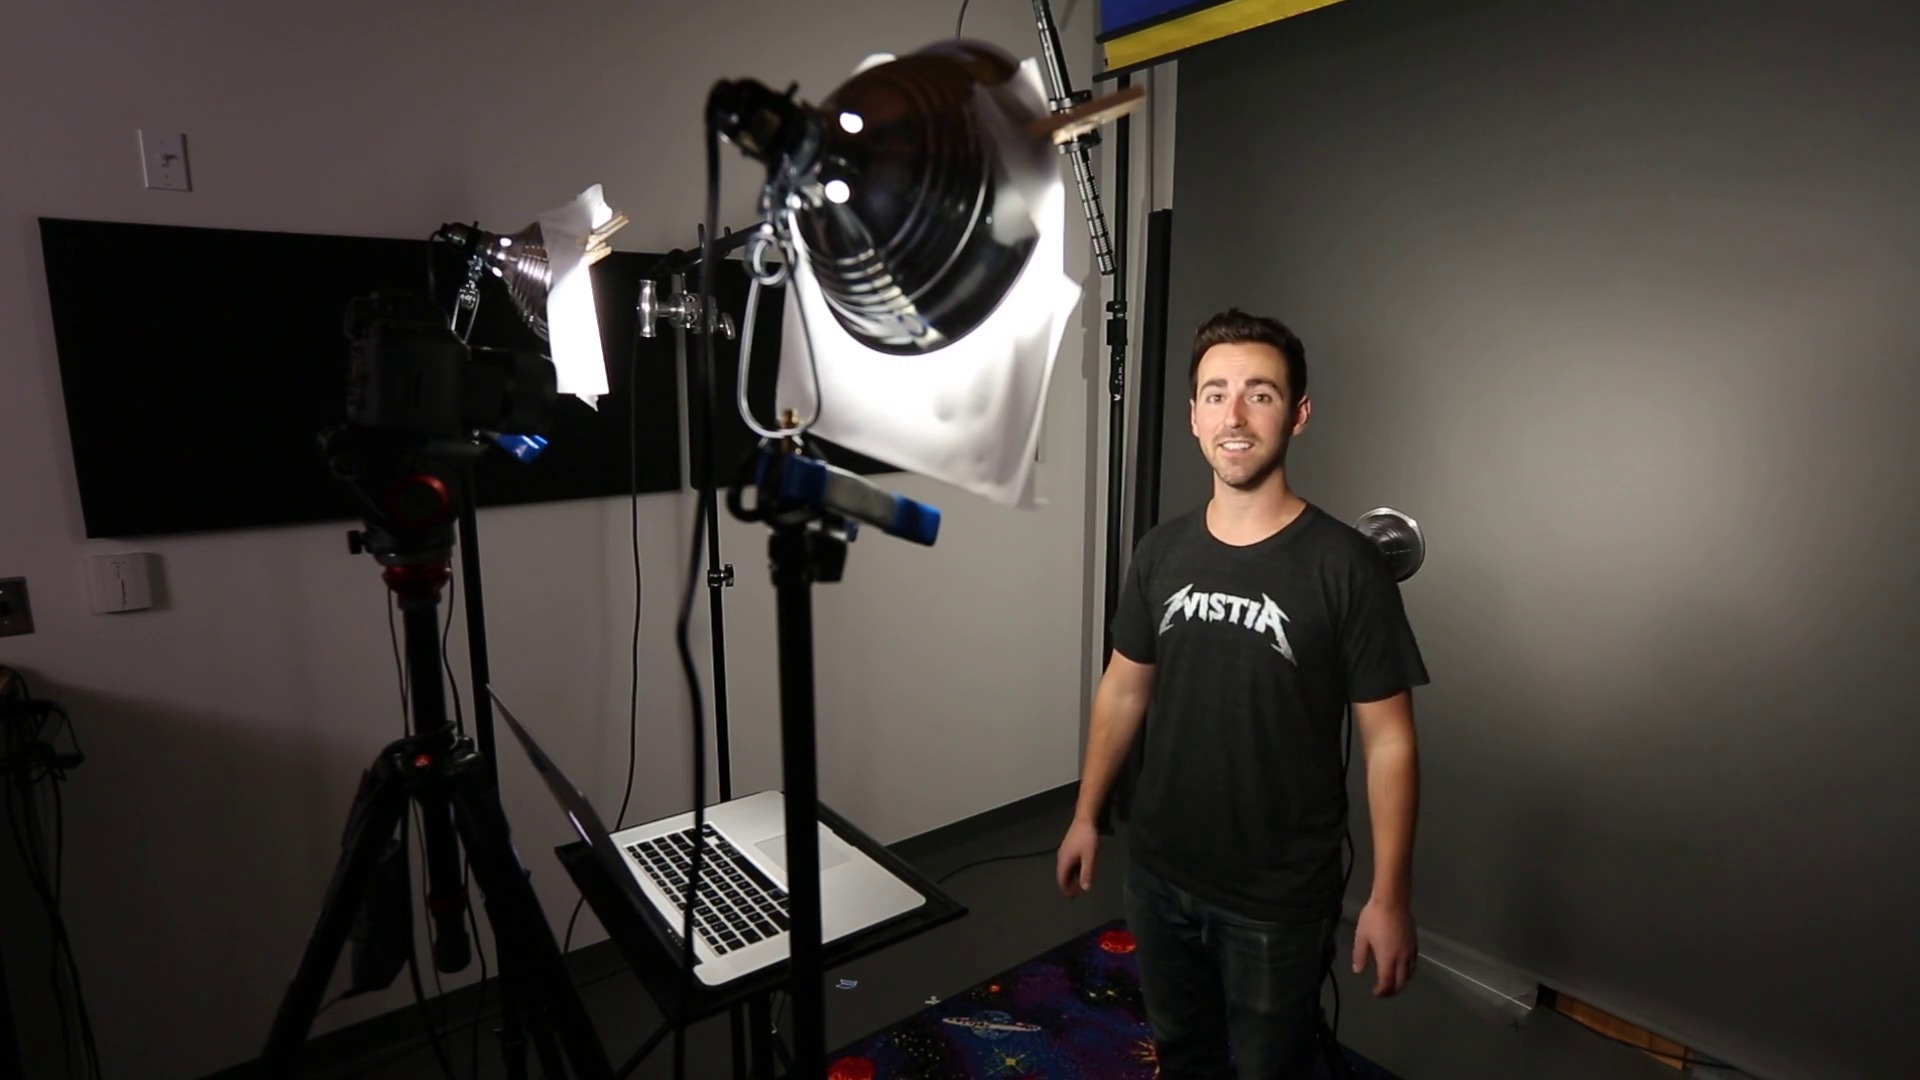 The Down And Dirty Diy Lighting Kit Wistia Blog